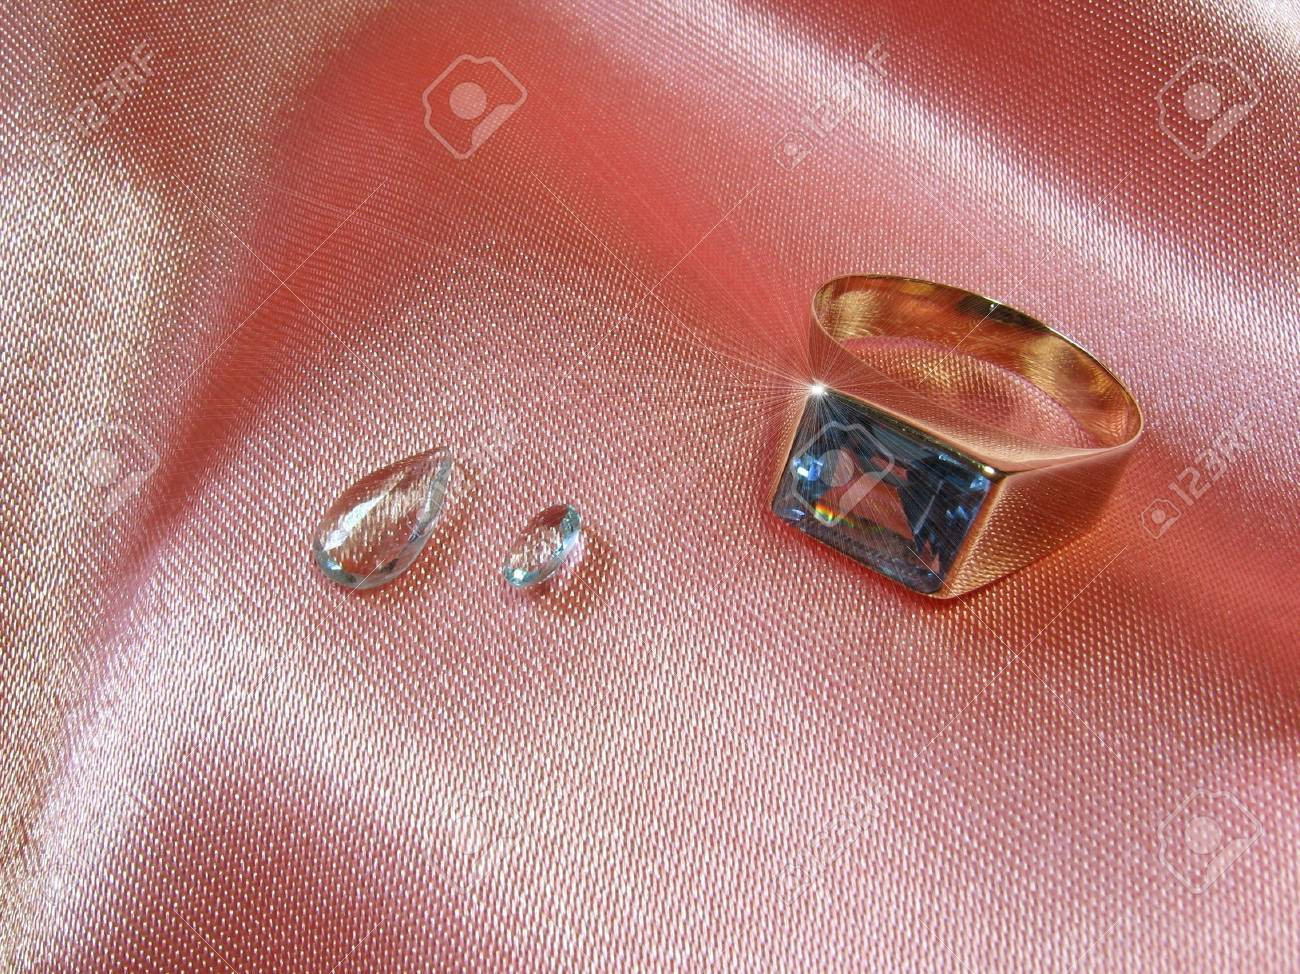 An Aquamarine Gold Ring With Two Gems On Pink Satin. The Sparkle ...